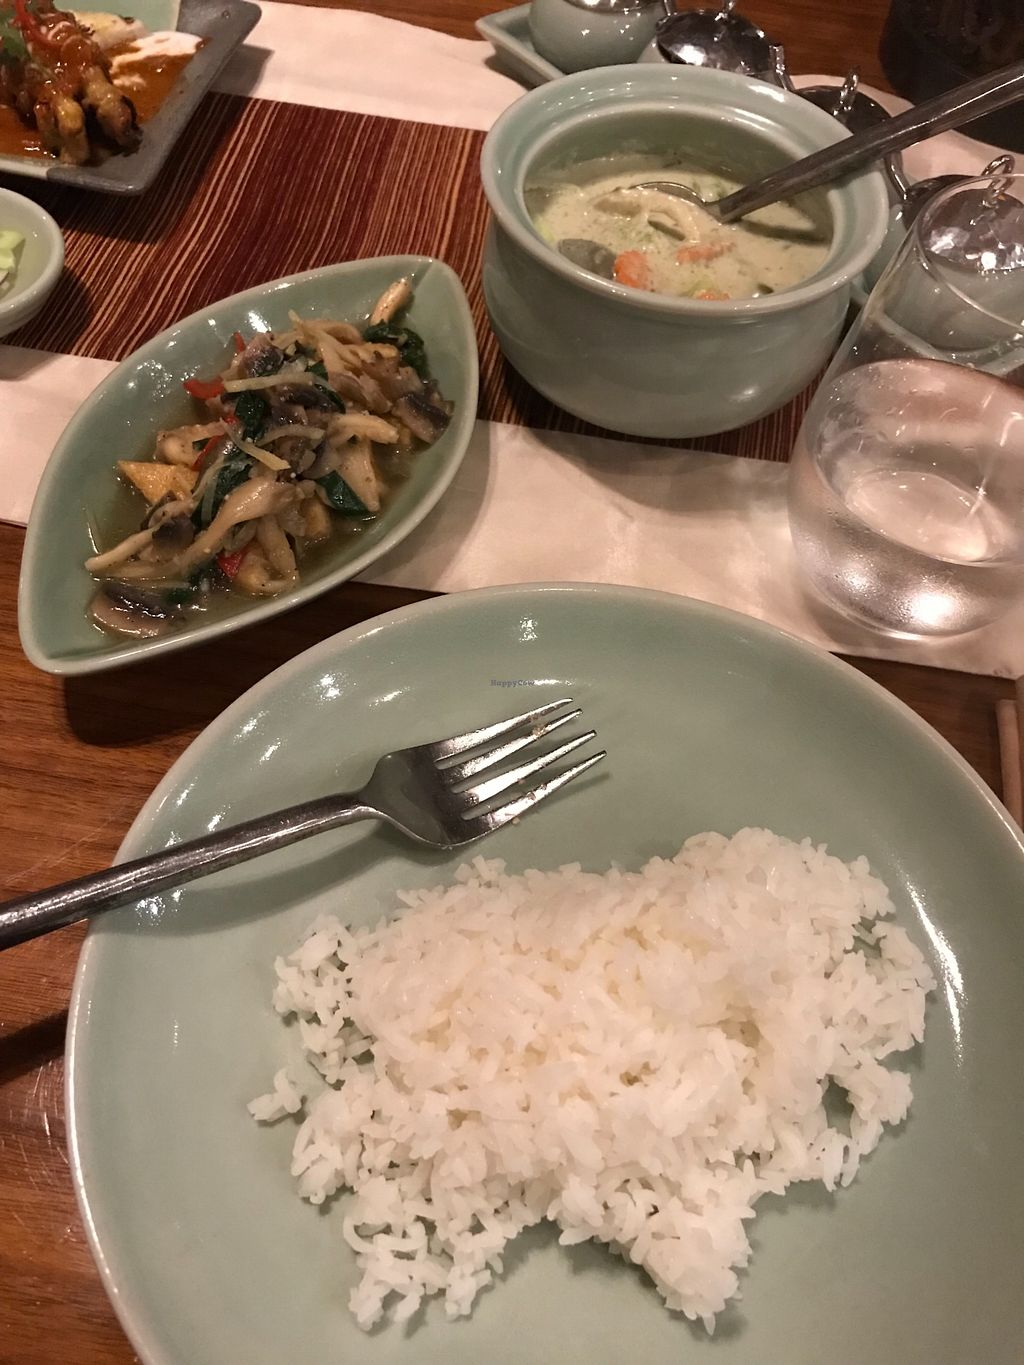 """Photo of Isaan  by <a href=""""/members/profile/AshleighC"""">AshleighC</a> <br/>The tofu and oyster mushrooms from the wok section of the 'healthy' menu and the green vegetable curry from the clay pot section of the 'healthy' menu <br/> February 23, 2018  - <a href='/contact/abuse/image/45182/362894'>Report</a>"""